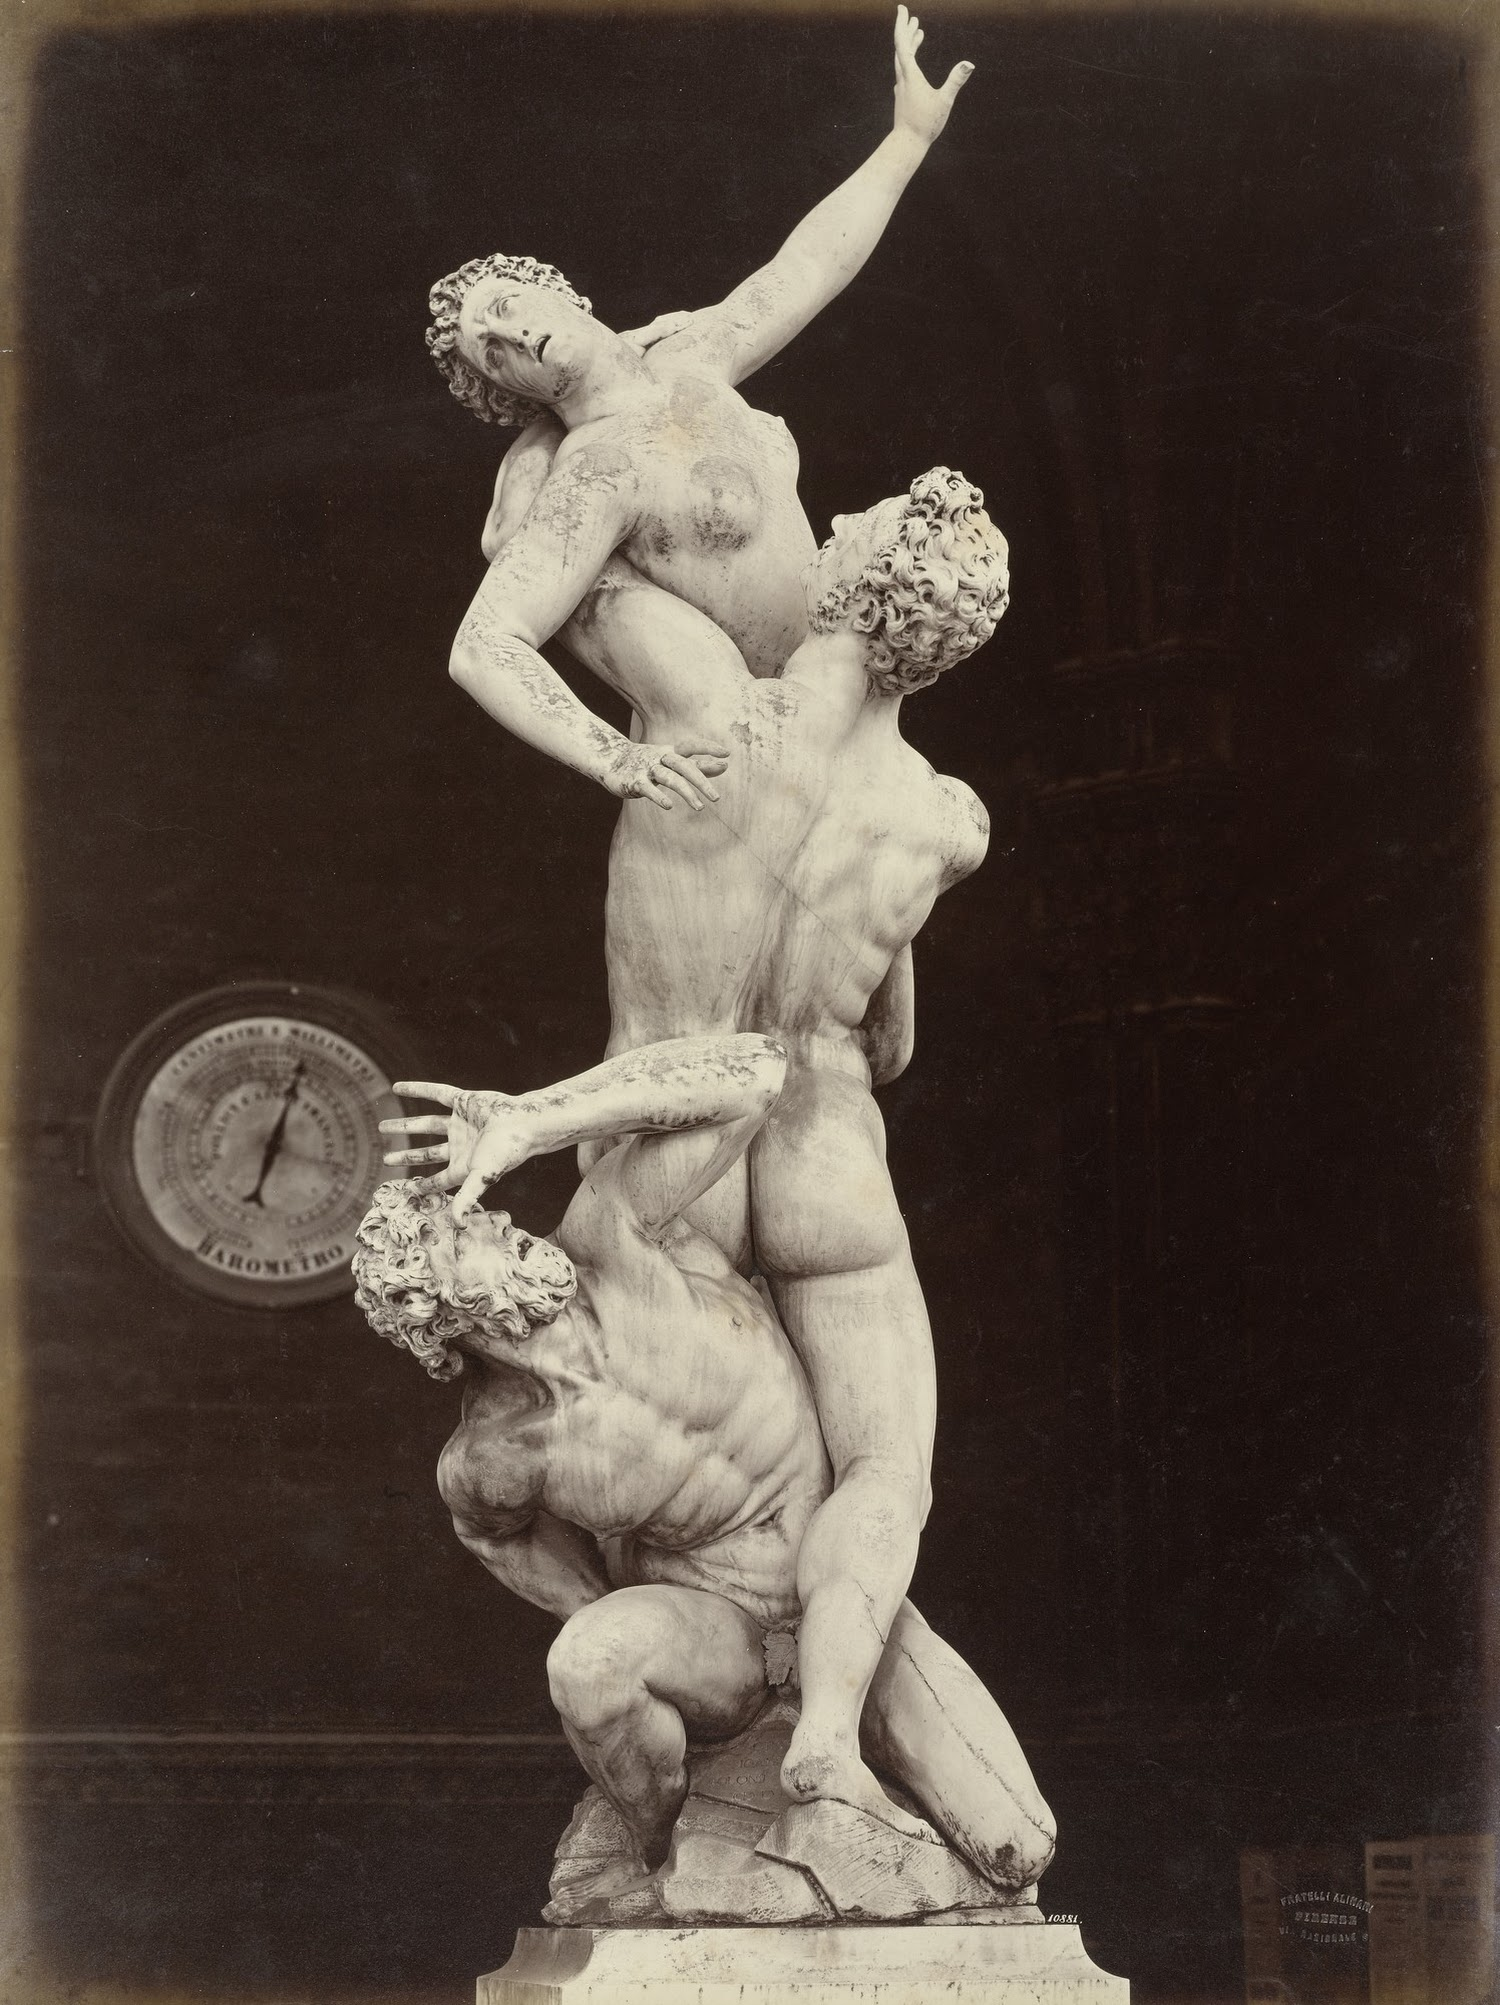 Leopoldo and Guiseppe Alinari, The Rape of the Sabines by Giovanni Bologna, Loggia Dei Lanzi, Florence c. 1865